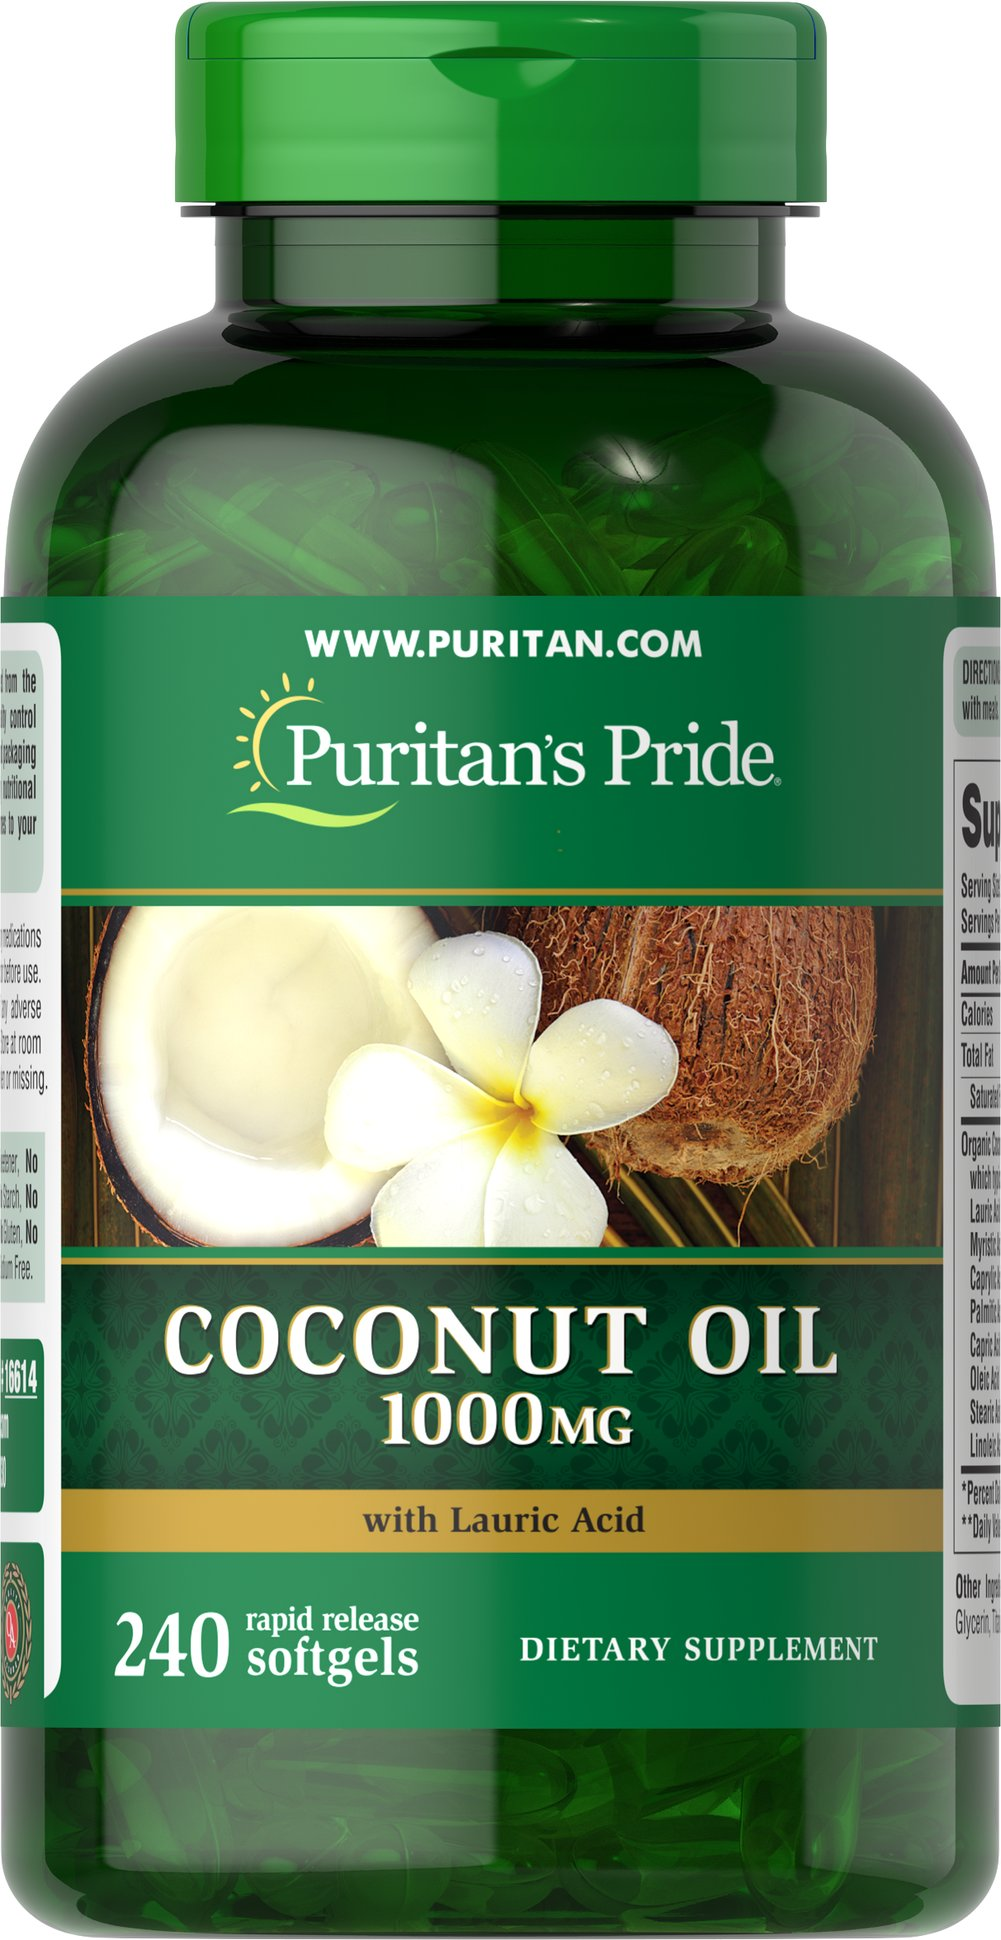 Coconut Oil 1000 mg <p>Coconuts are enjoyed in tropical regions around the world and now you can enjoy the benefits of Coconut Oil in a convenient softgel. Coconut Oil provides you with a natural energy source, and contains essential fatty acids and Medium Chain Triglycerides (MCTs). MCTs are oxidized differently in the body than other fats, making Coconut Oil a readily available energy source.** </p><p></p> 240 Softgels 1000 mg $30.38